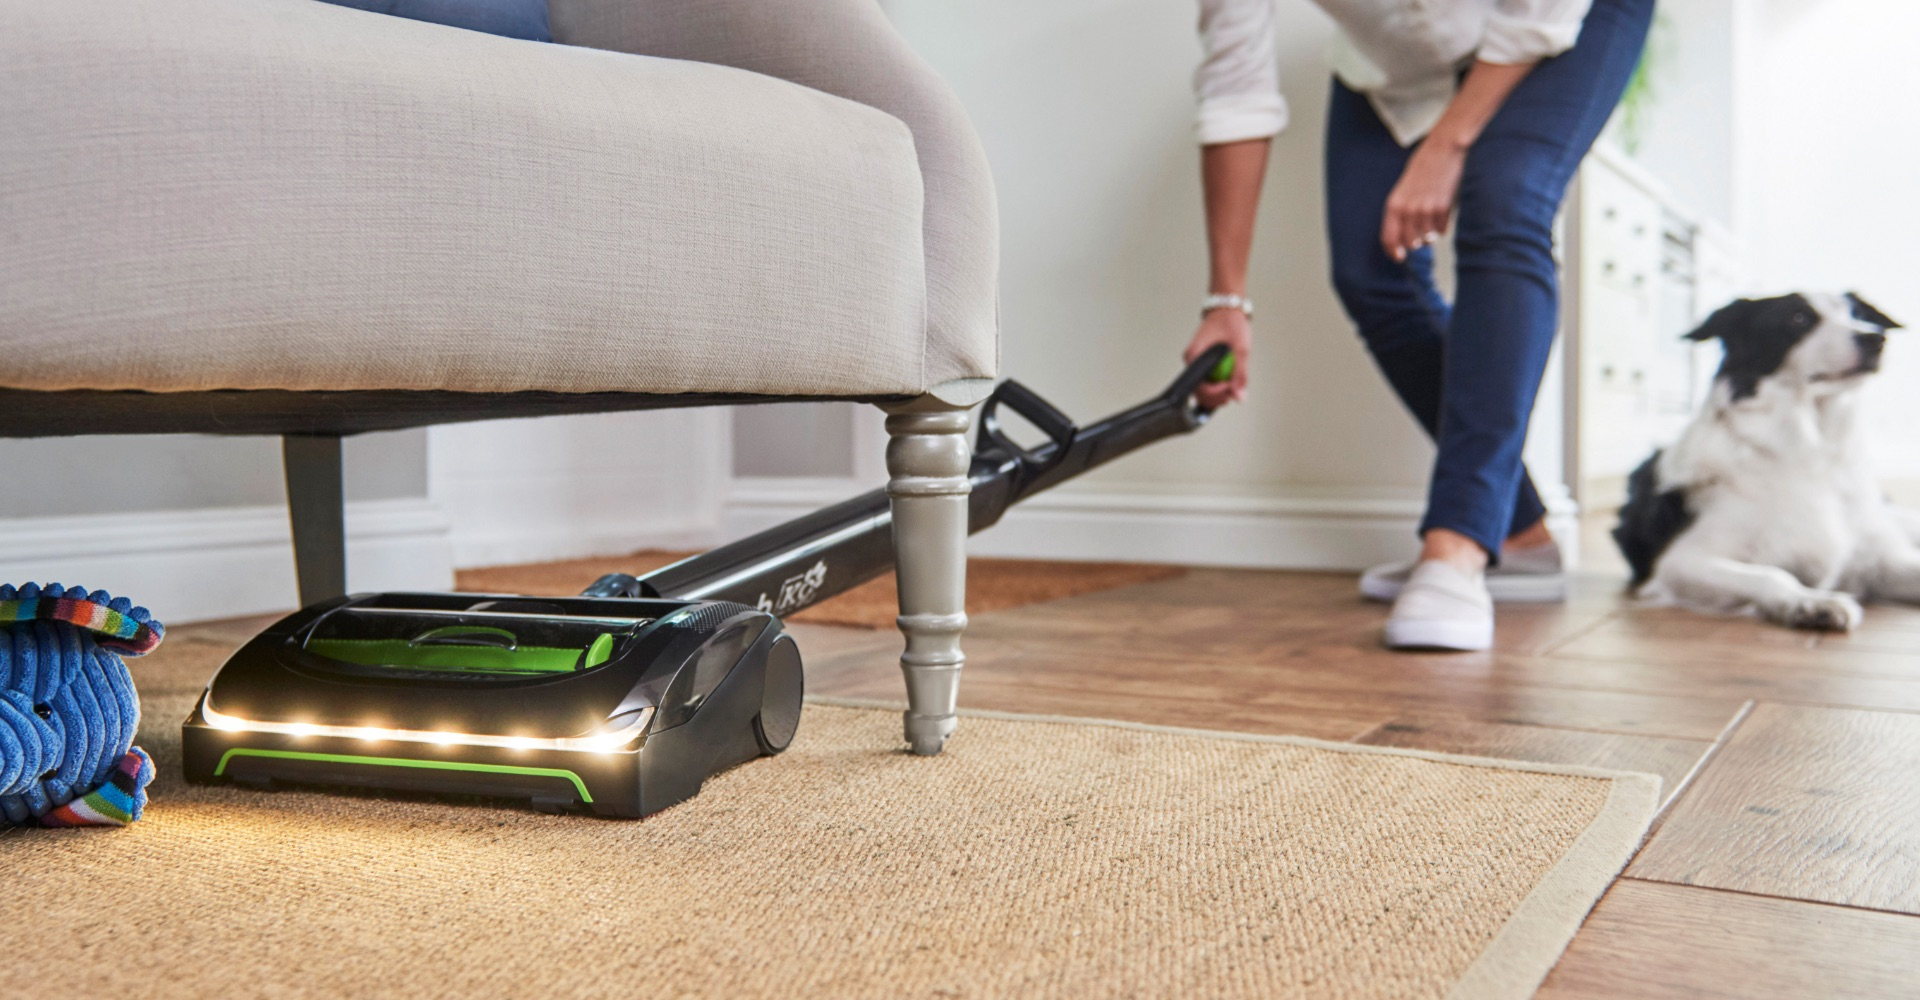 AirRam K9 cordless vacuum cleaner long run time